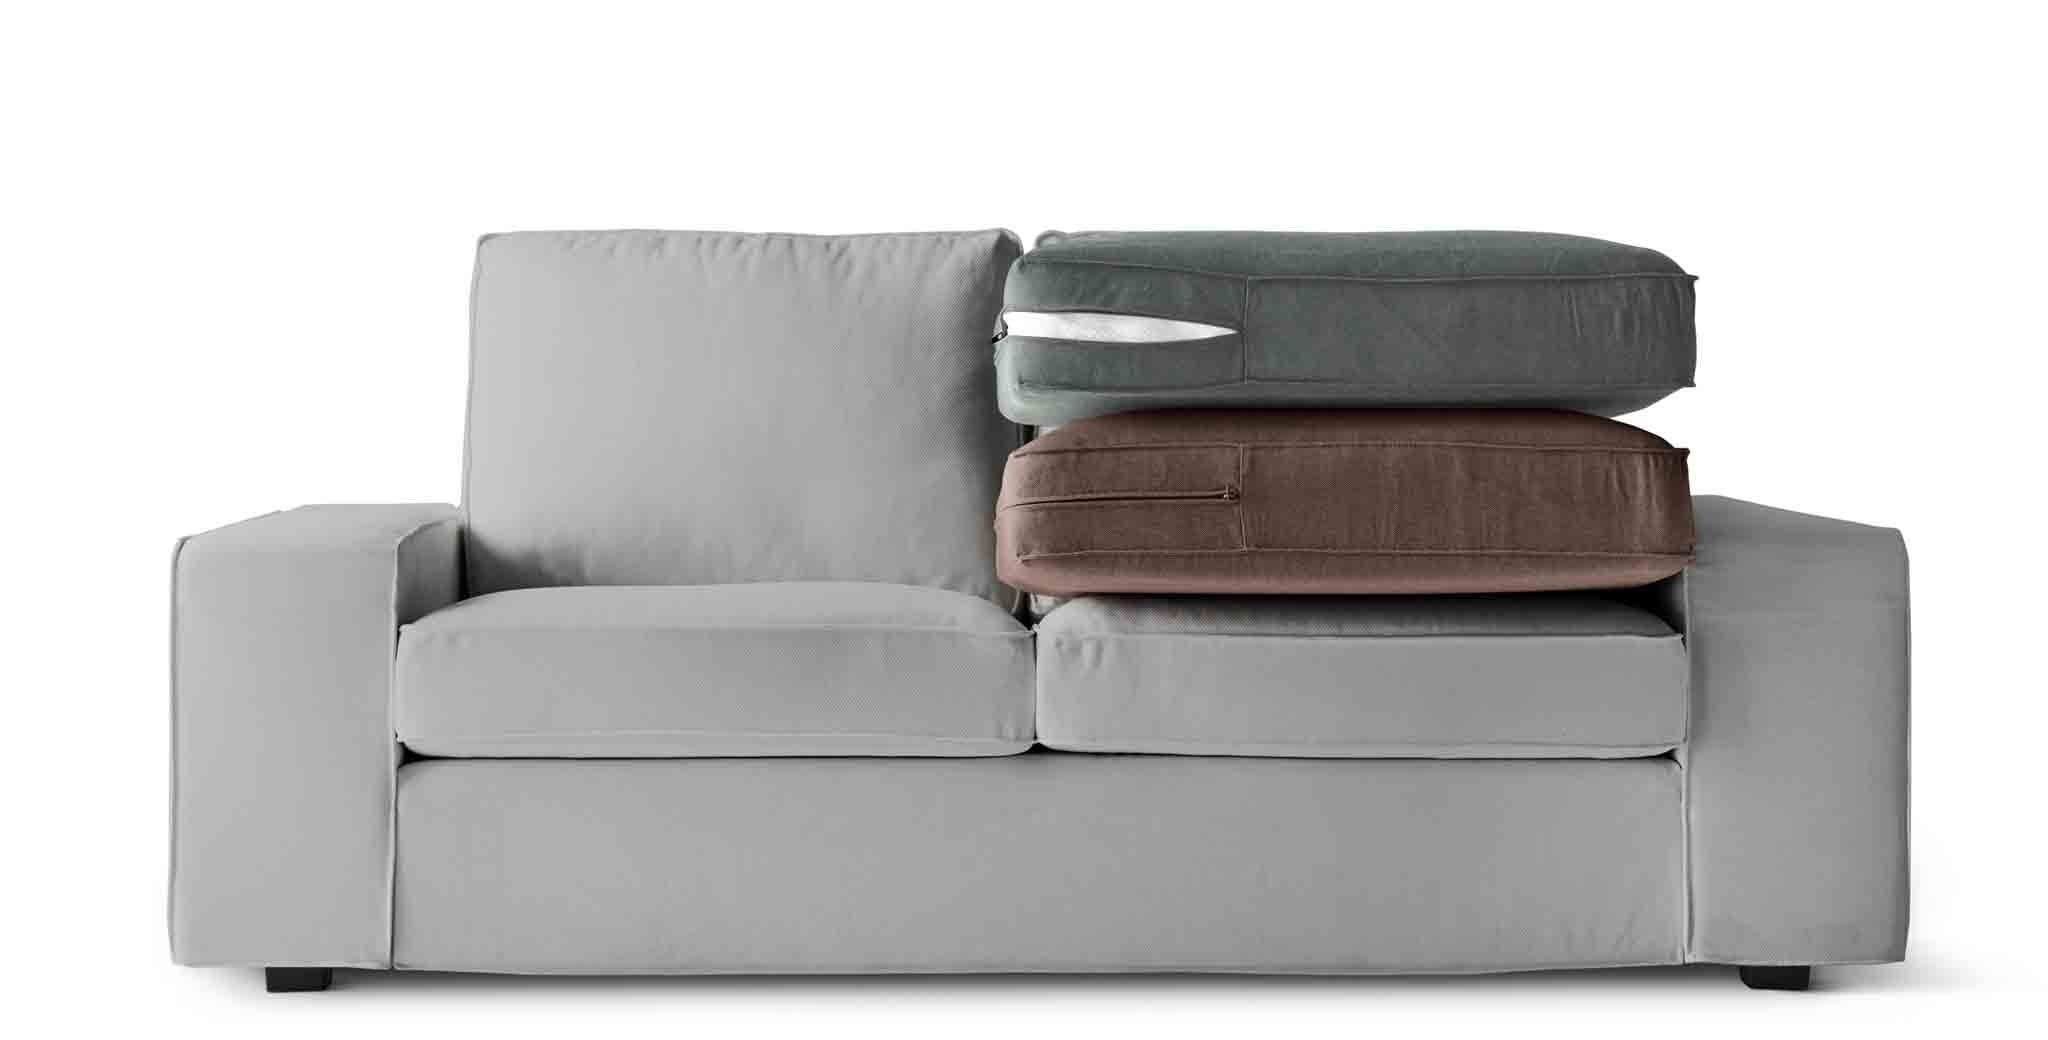 Sofa Covers | Ikea with regard to Sofas With Removable Cover (Image 6 of 10)